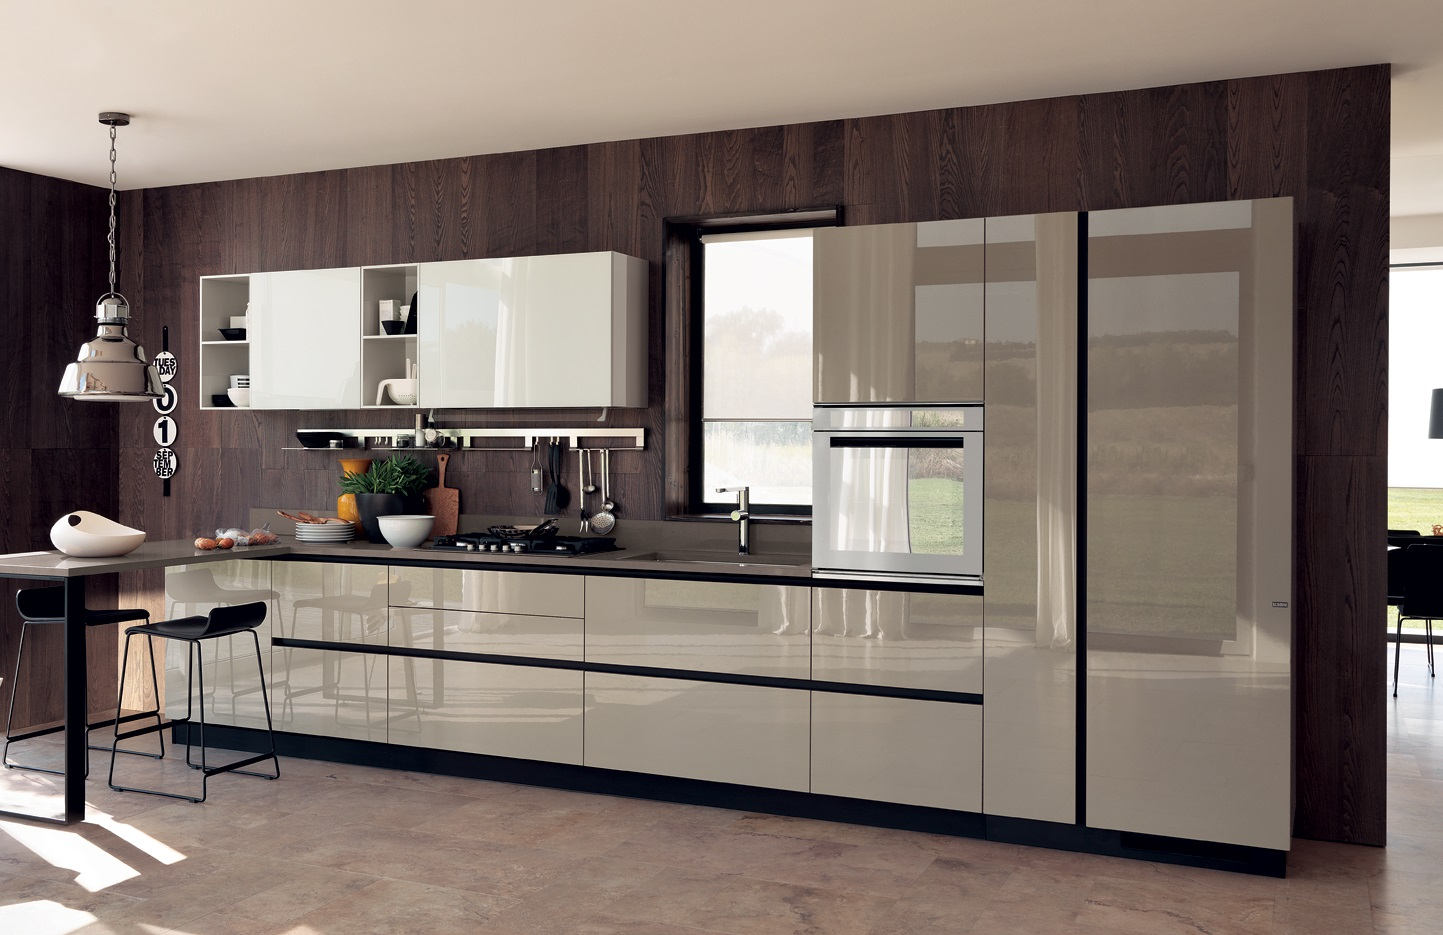 pricey italian kitchen cabinets trending those where price not factor kitchen cabinet cost Pricey Italian kitchen cabinets fit those where cost is not a factor